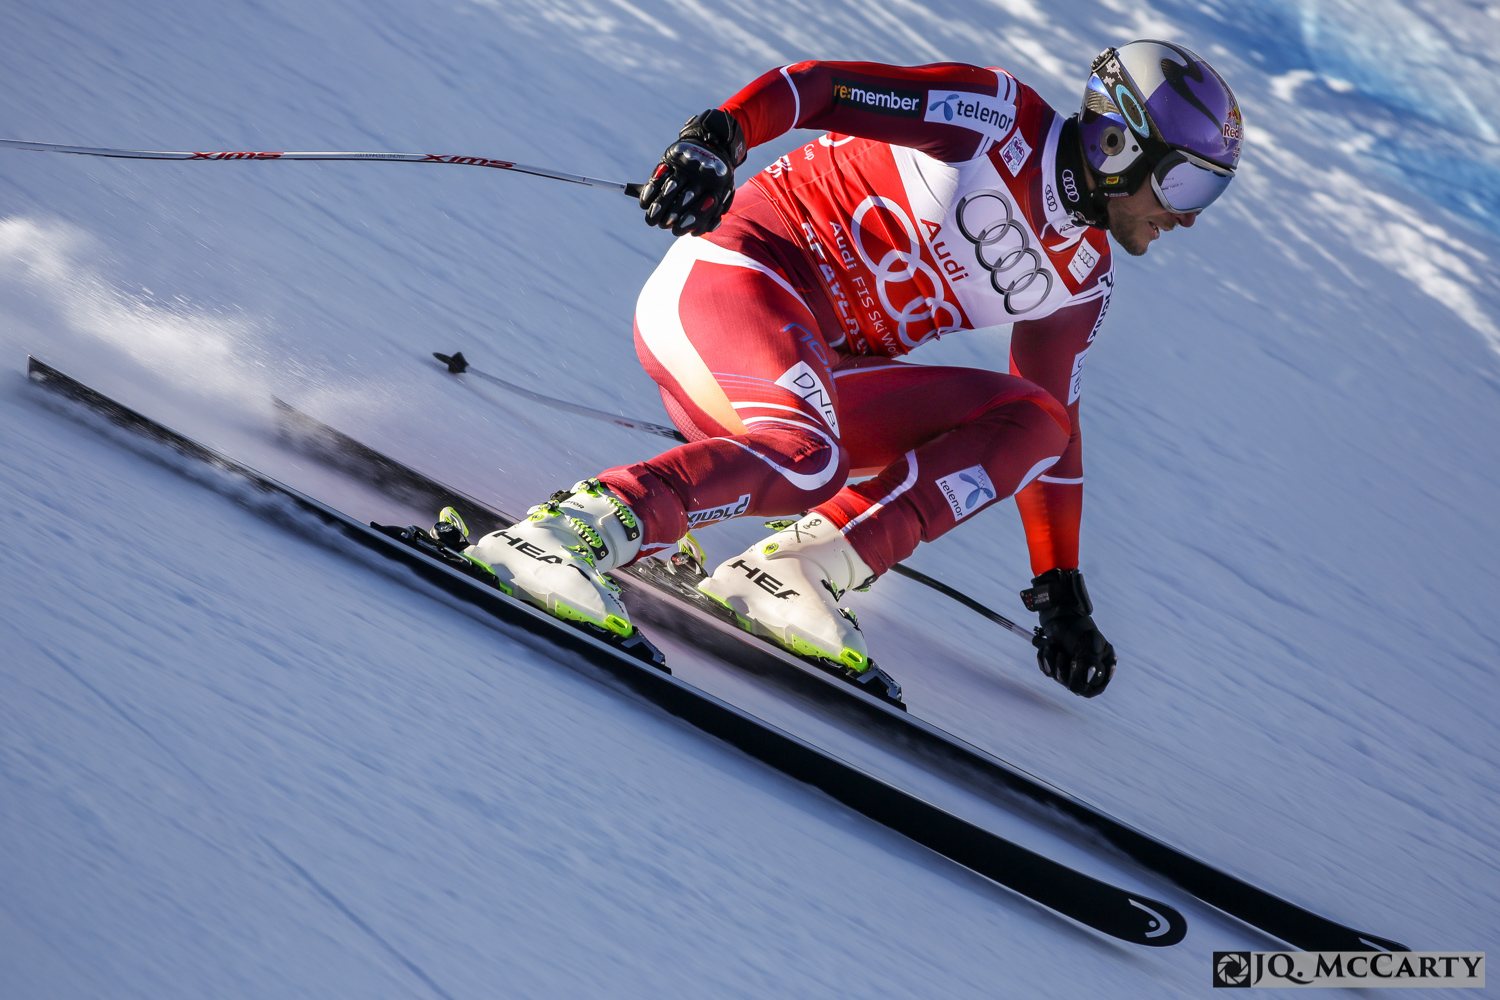 Norway's Aksel Lund Svindel holds a sharp edge while flying through the Talon's section of the Birds of Prey World Cup race course for the second day of training Thursday in Beaver Creek. Svindel finished fourth fastest on the day with a time of 1 minute, 43.63 seconds.